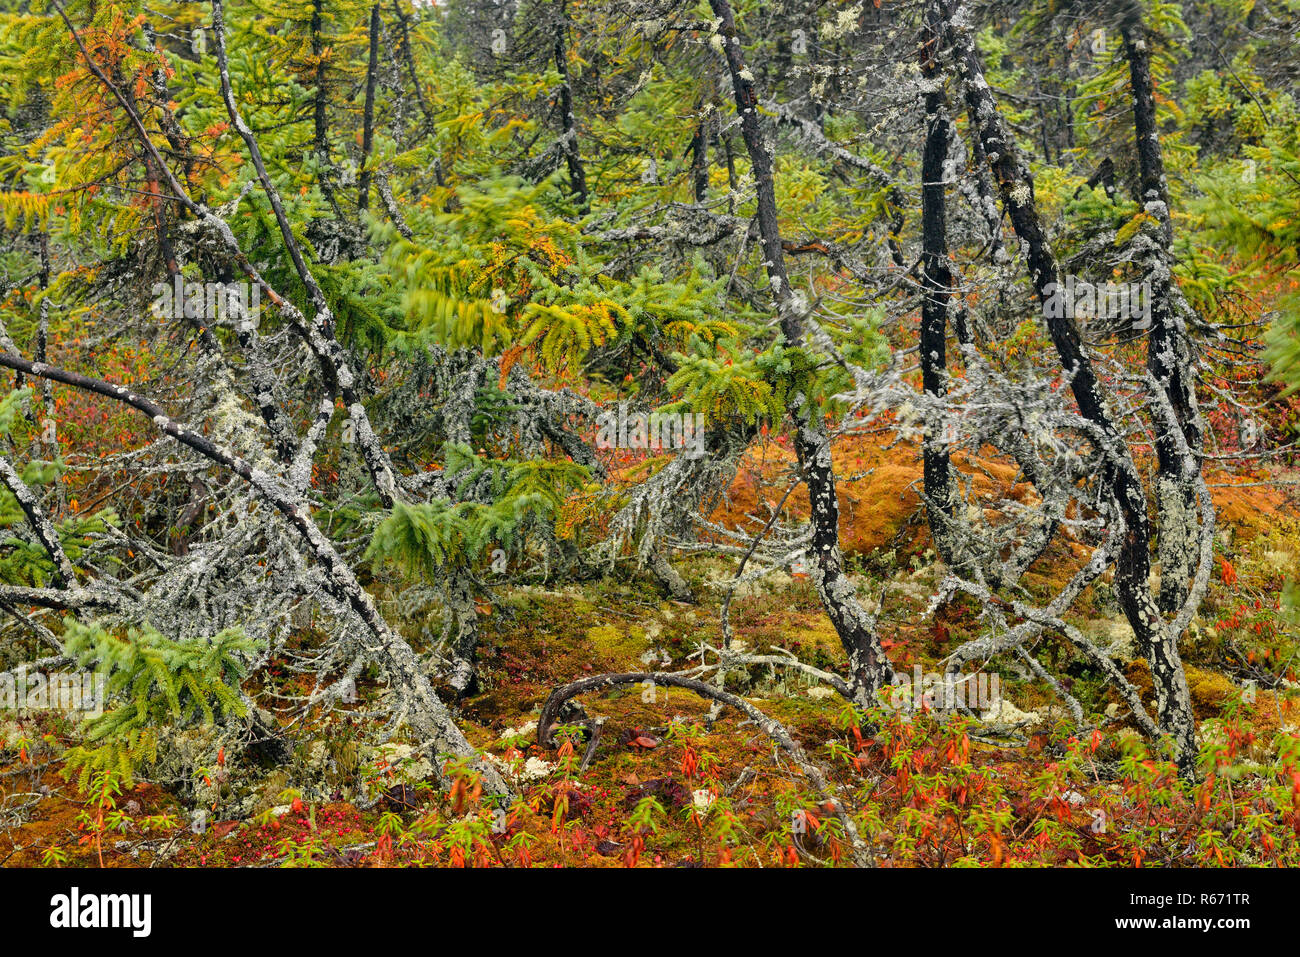 Barrenlands tundra plant community- Lichen covered dwarf spruces, Arctic Haven lodge on Ennadai Lake, Nunavut Territory, Canada - Stock Image